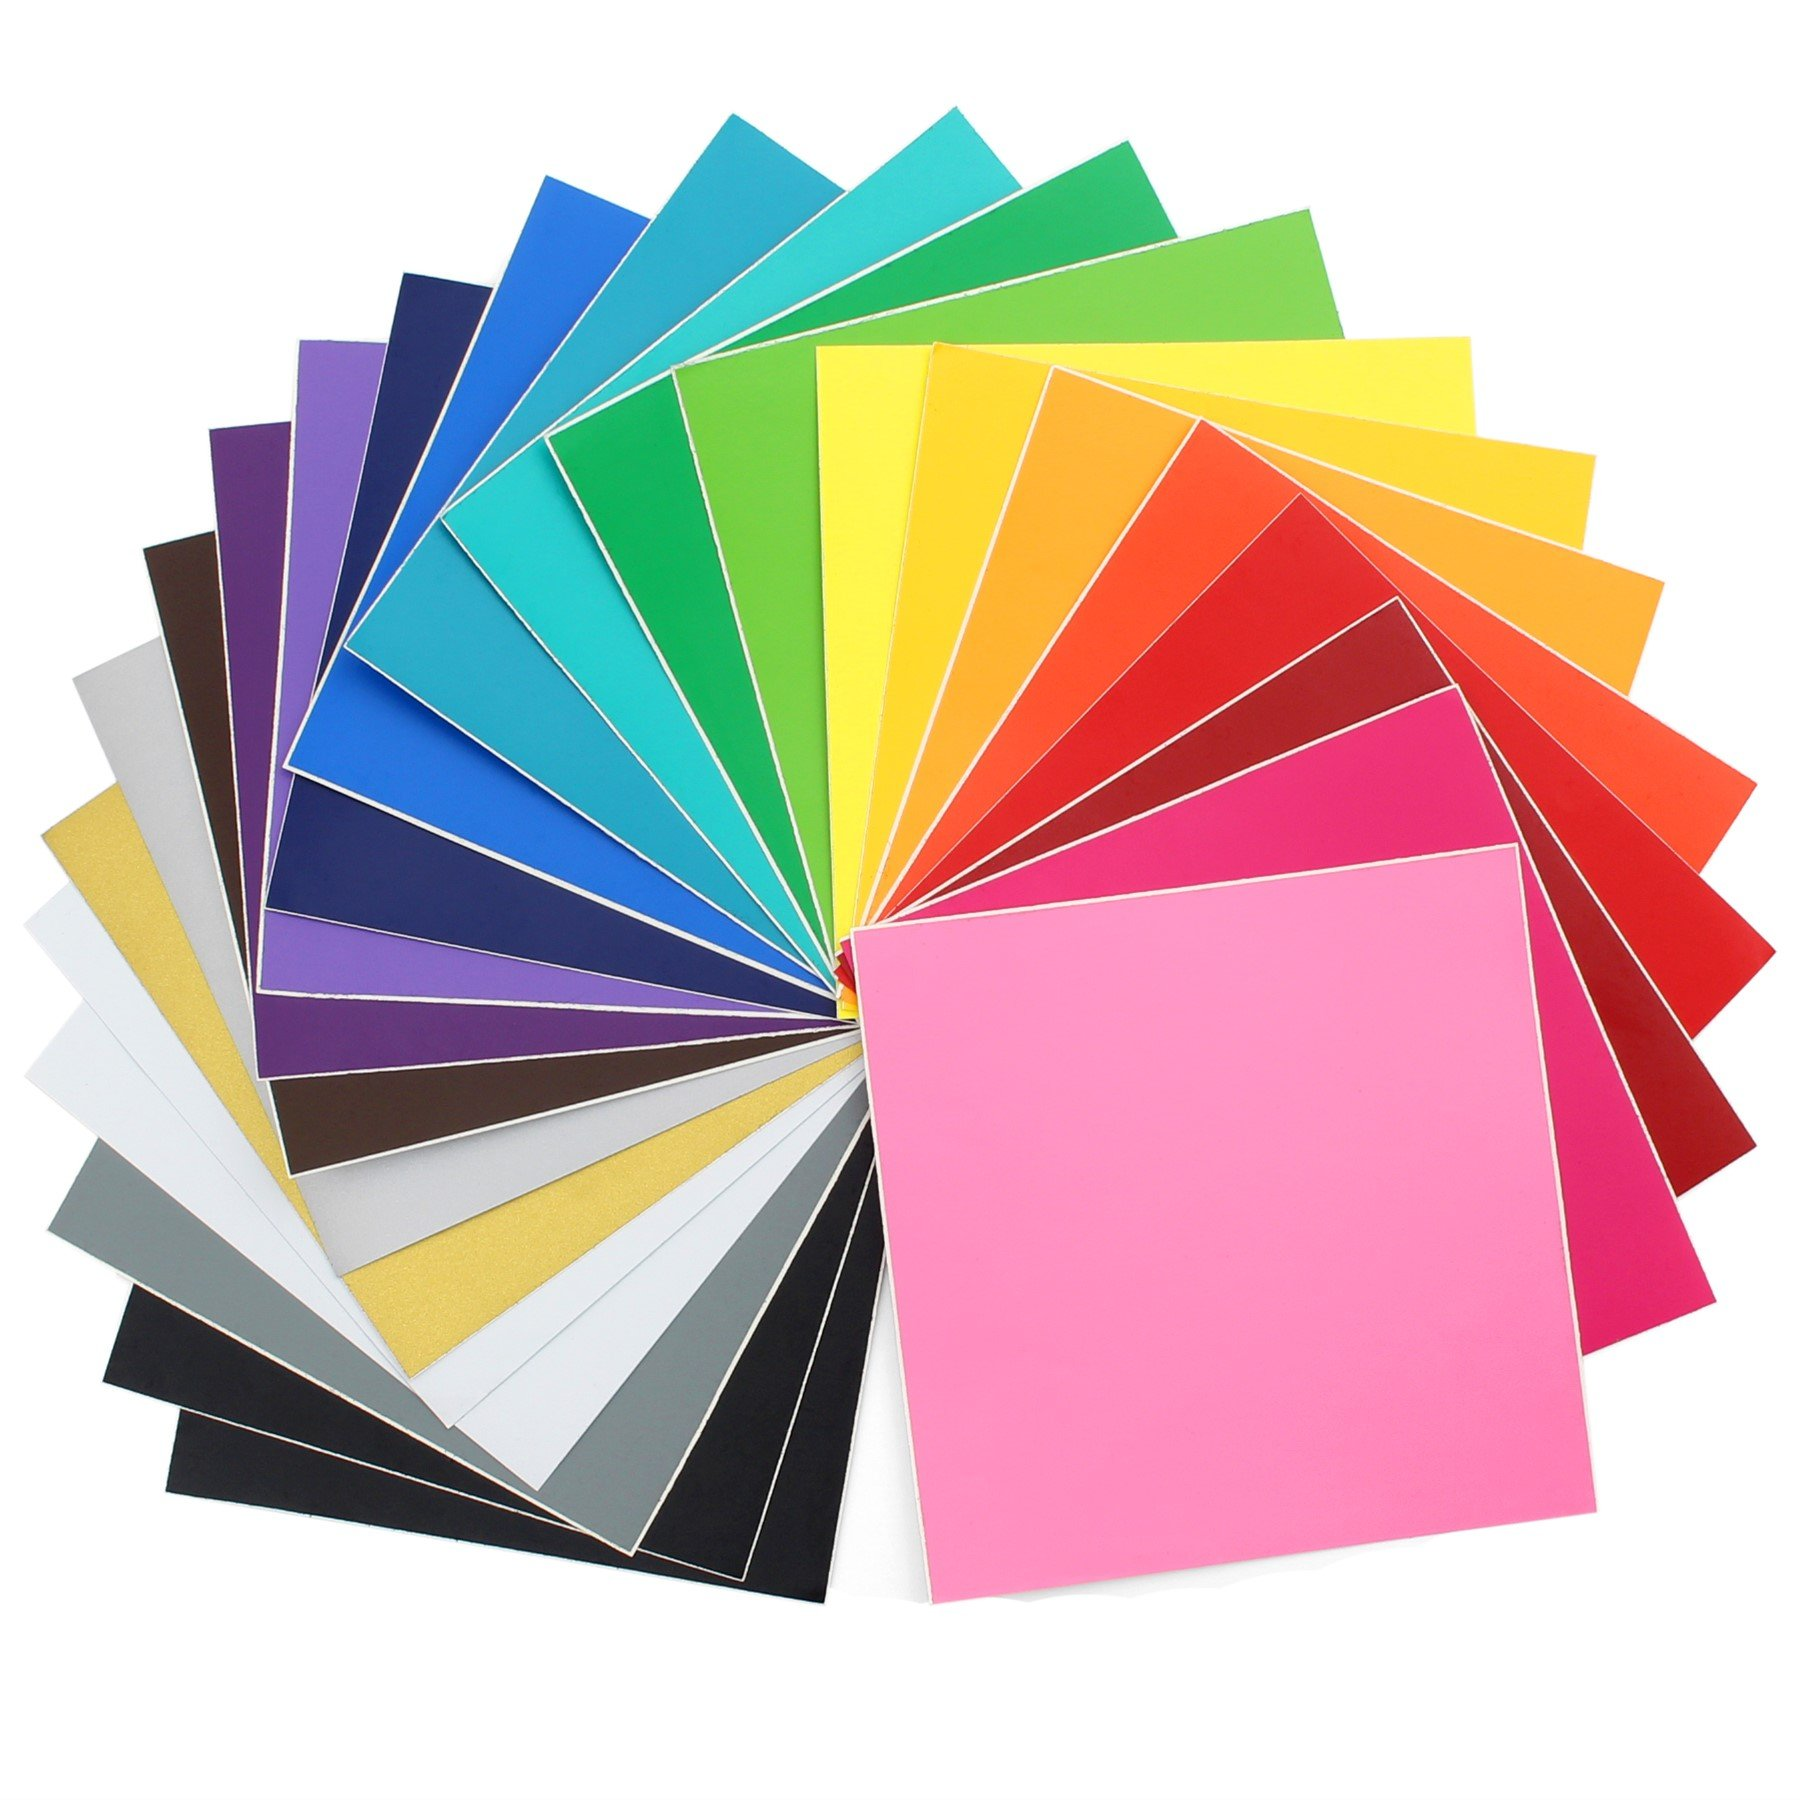 Oracal 631 Matte Vinyl - 24 Pack of Top Colors - 12'' x 12'' Sheets by ORACAL (Image #1)